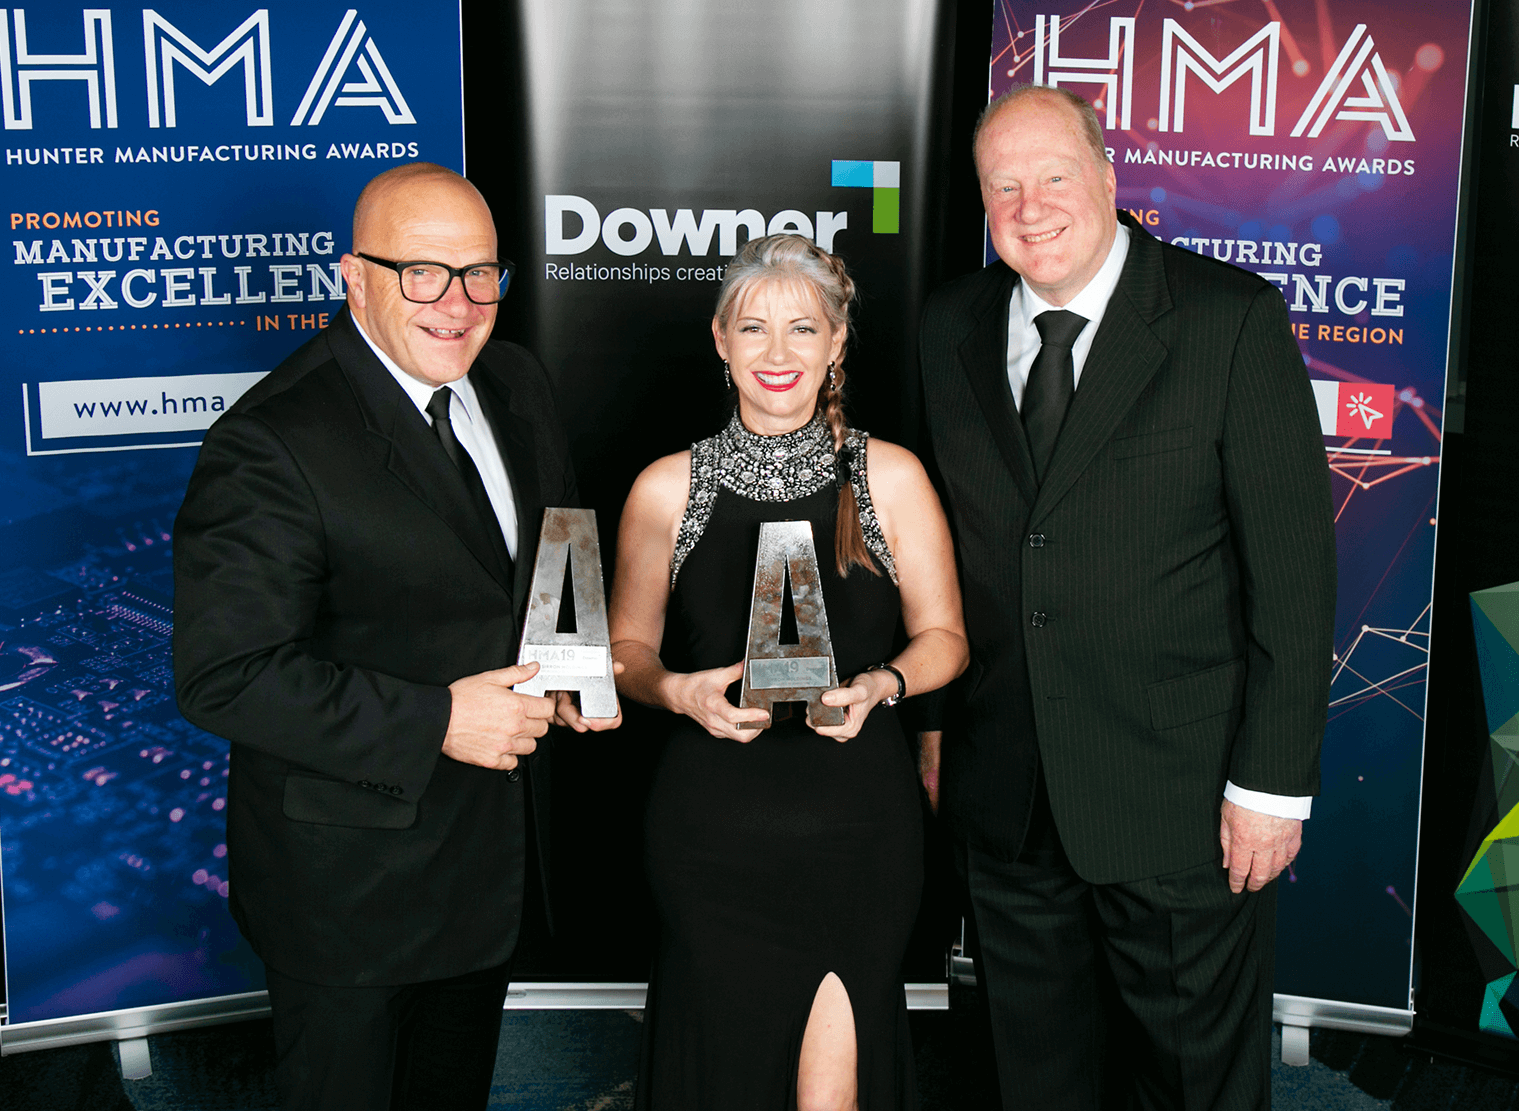 Sirron scores double win at Hunter Manufacturing Awards!